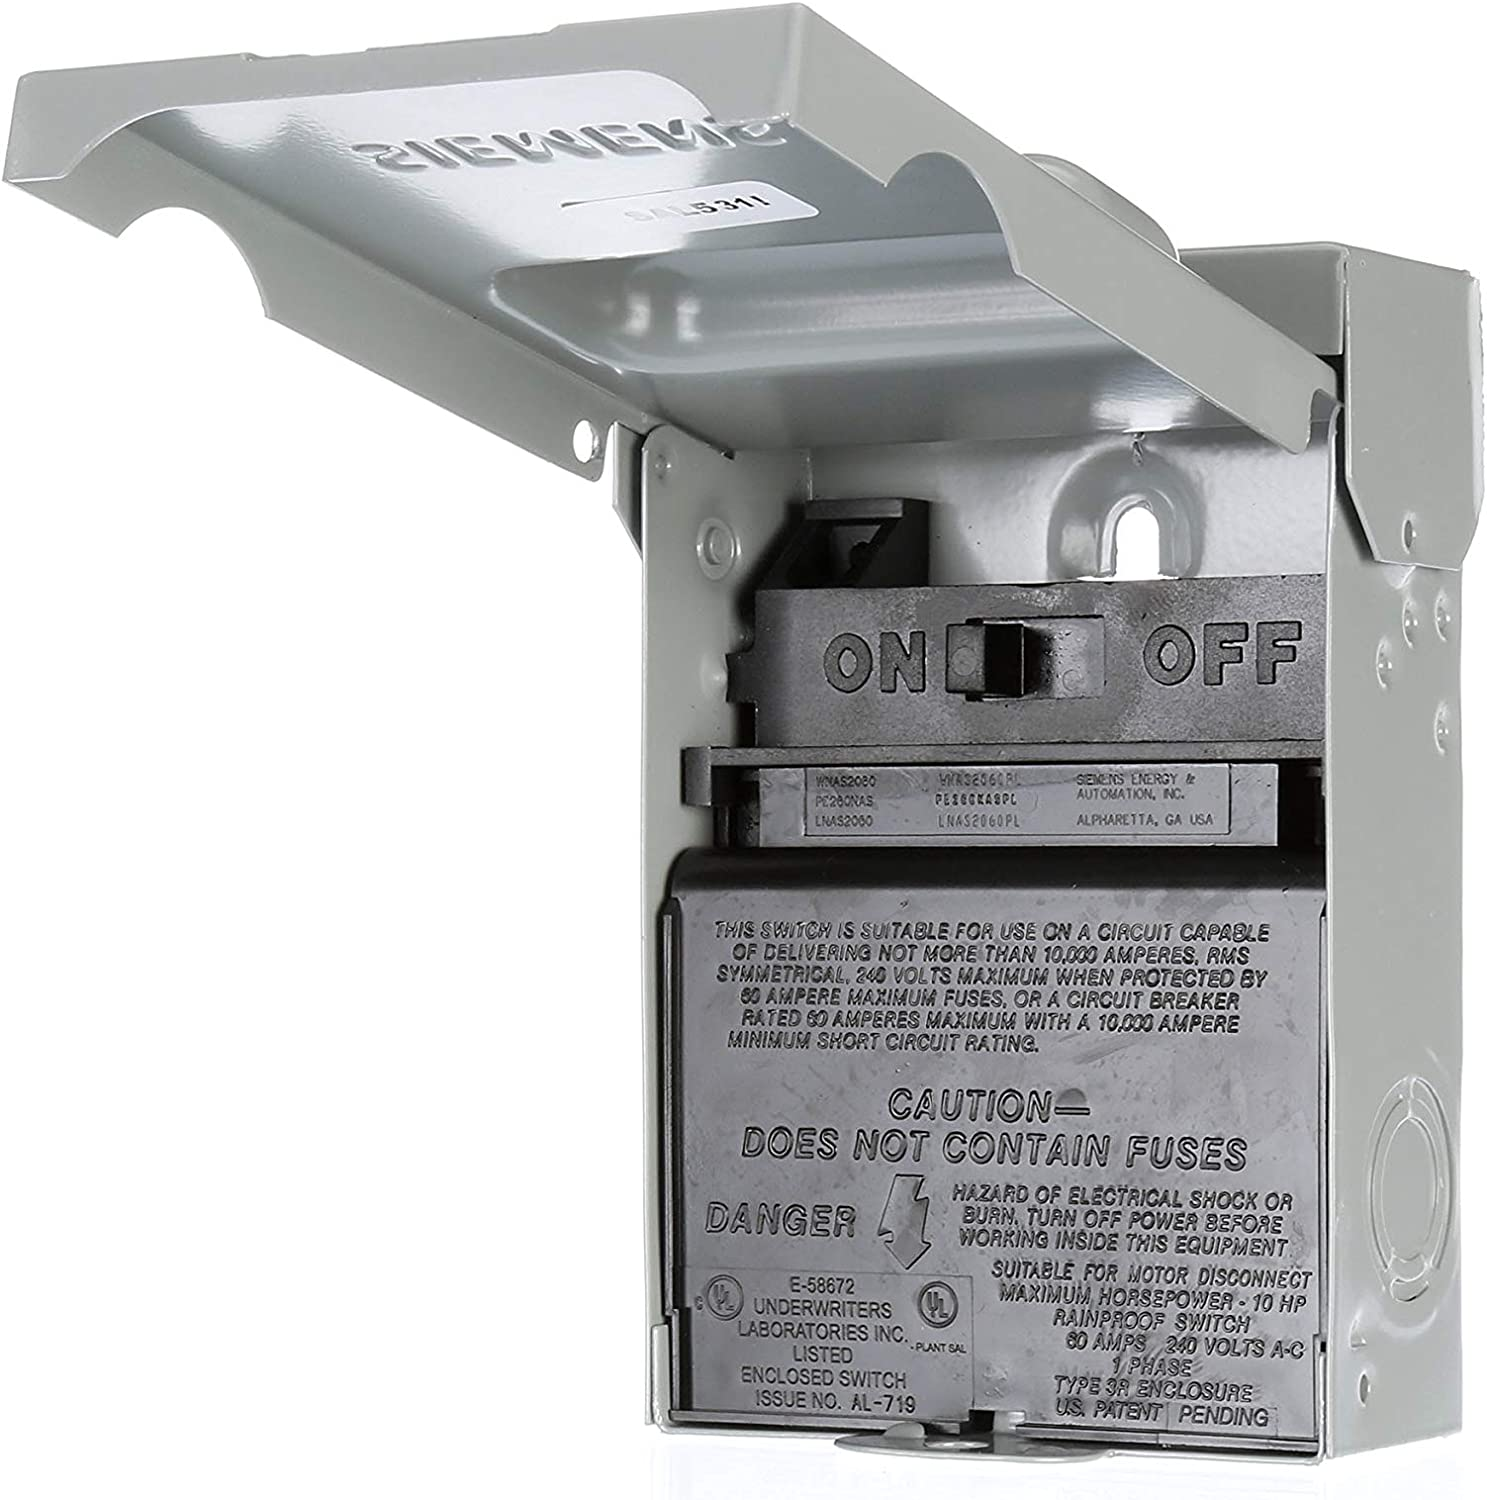 Siemens WNAS2060 Non-Automatic Switch AC Disconnect - Appliance Replacement Parts -